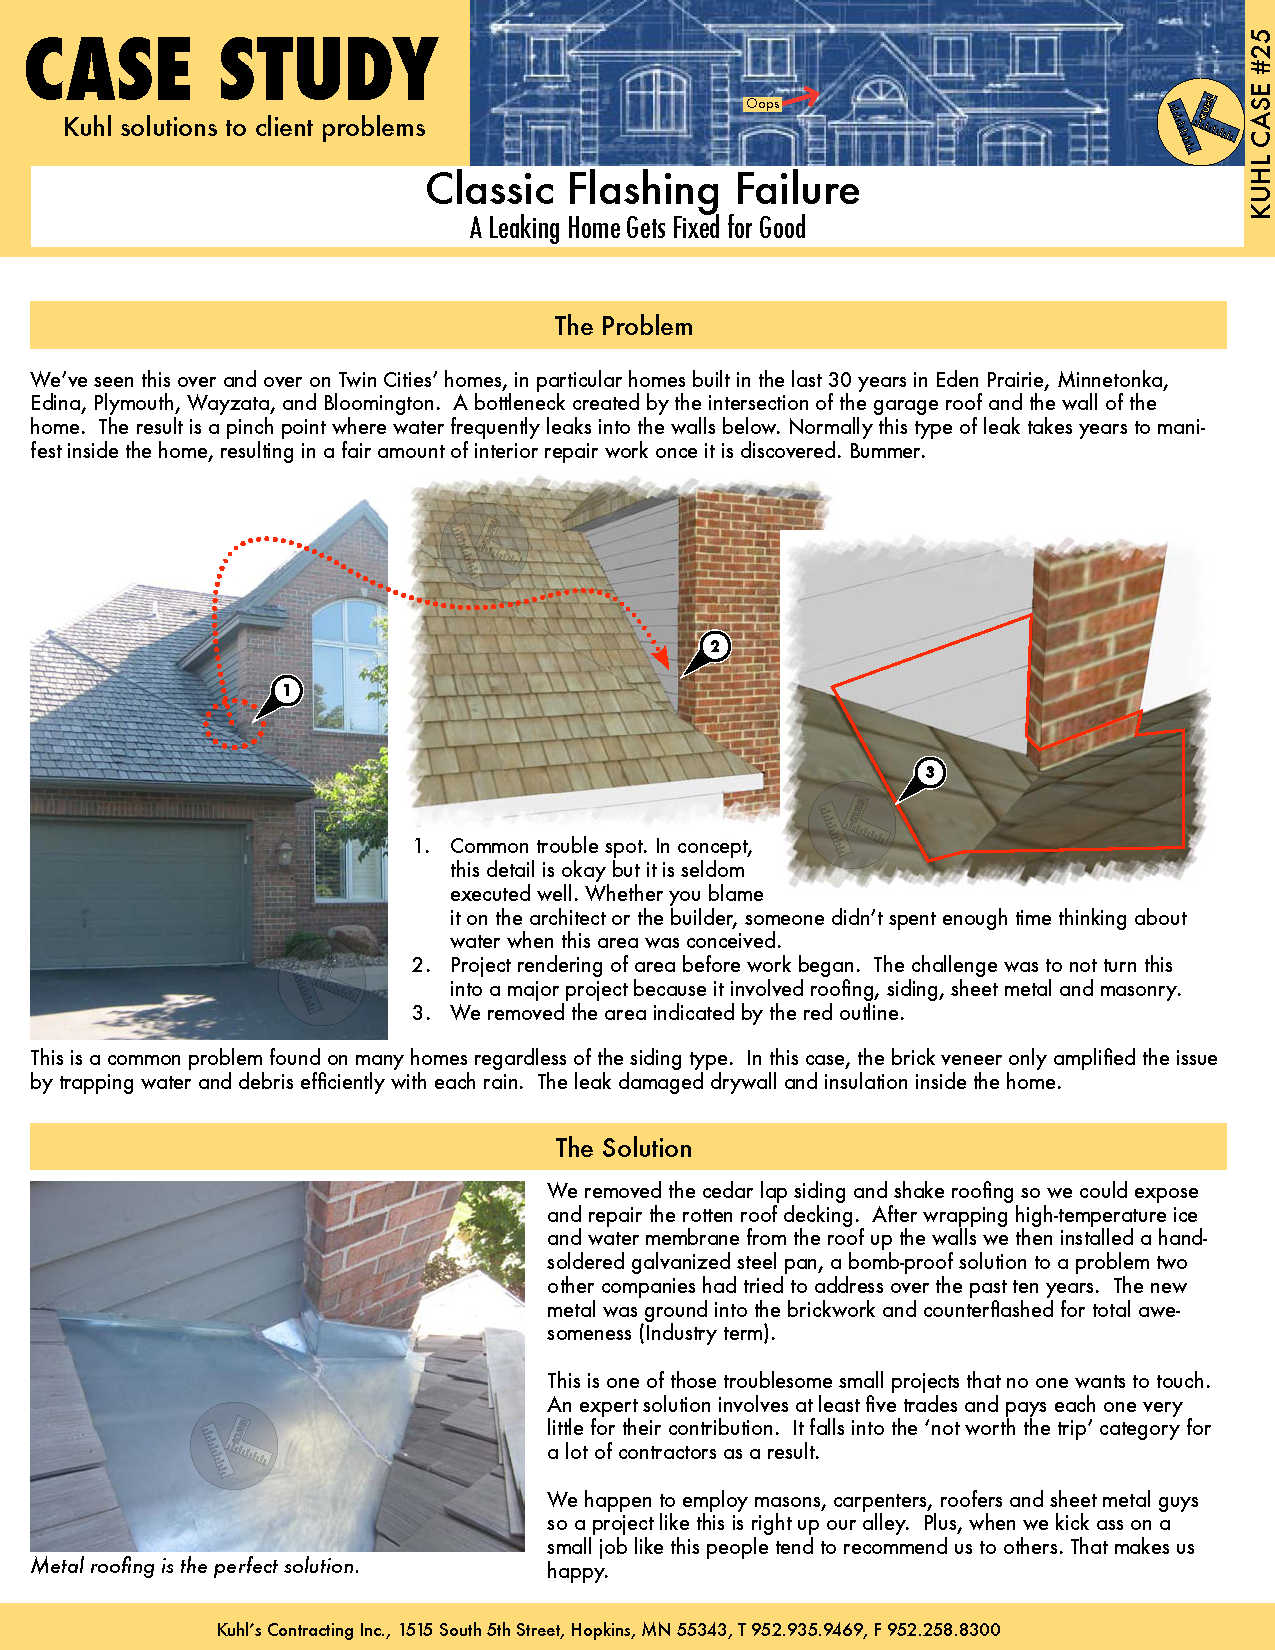 Classic Flashing Failure: Roof Flashing Experts to the Rescue